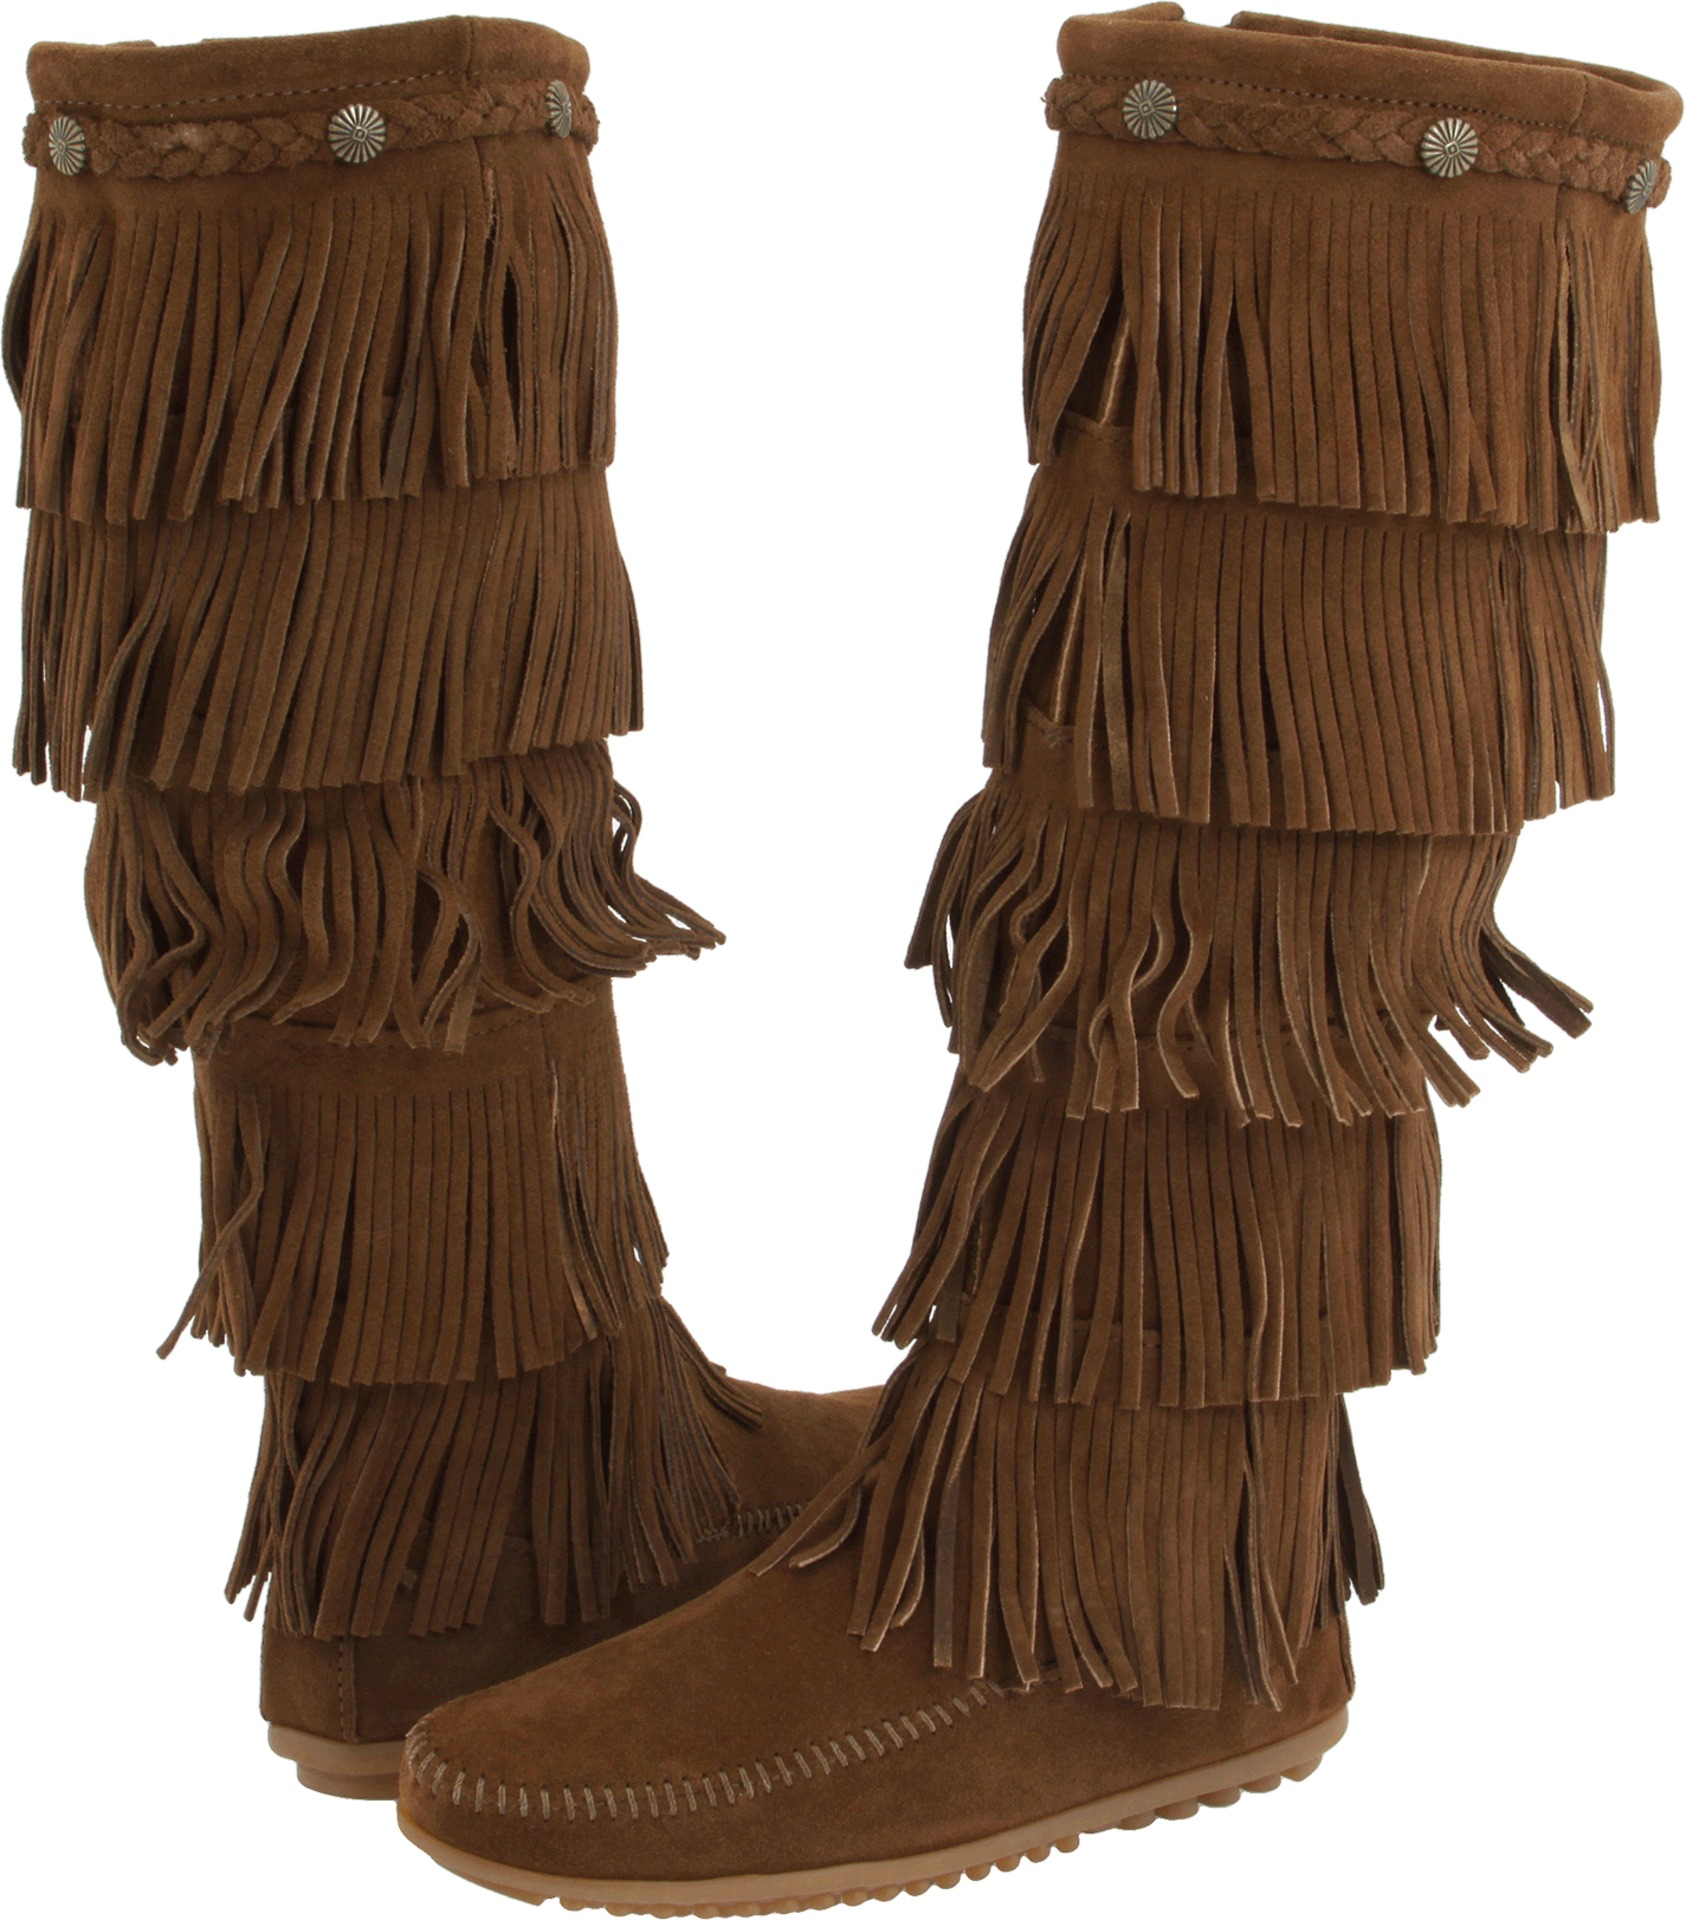 Minnetonka 5-Layer Fringe Boot Dusty Brown Suede - Zappos.com Free Shipping BOTH Ways